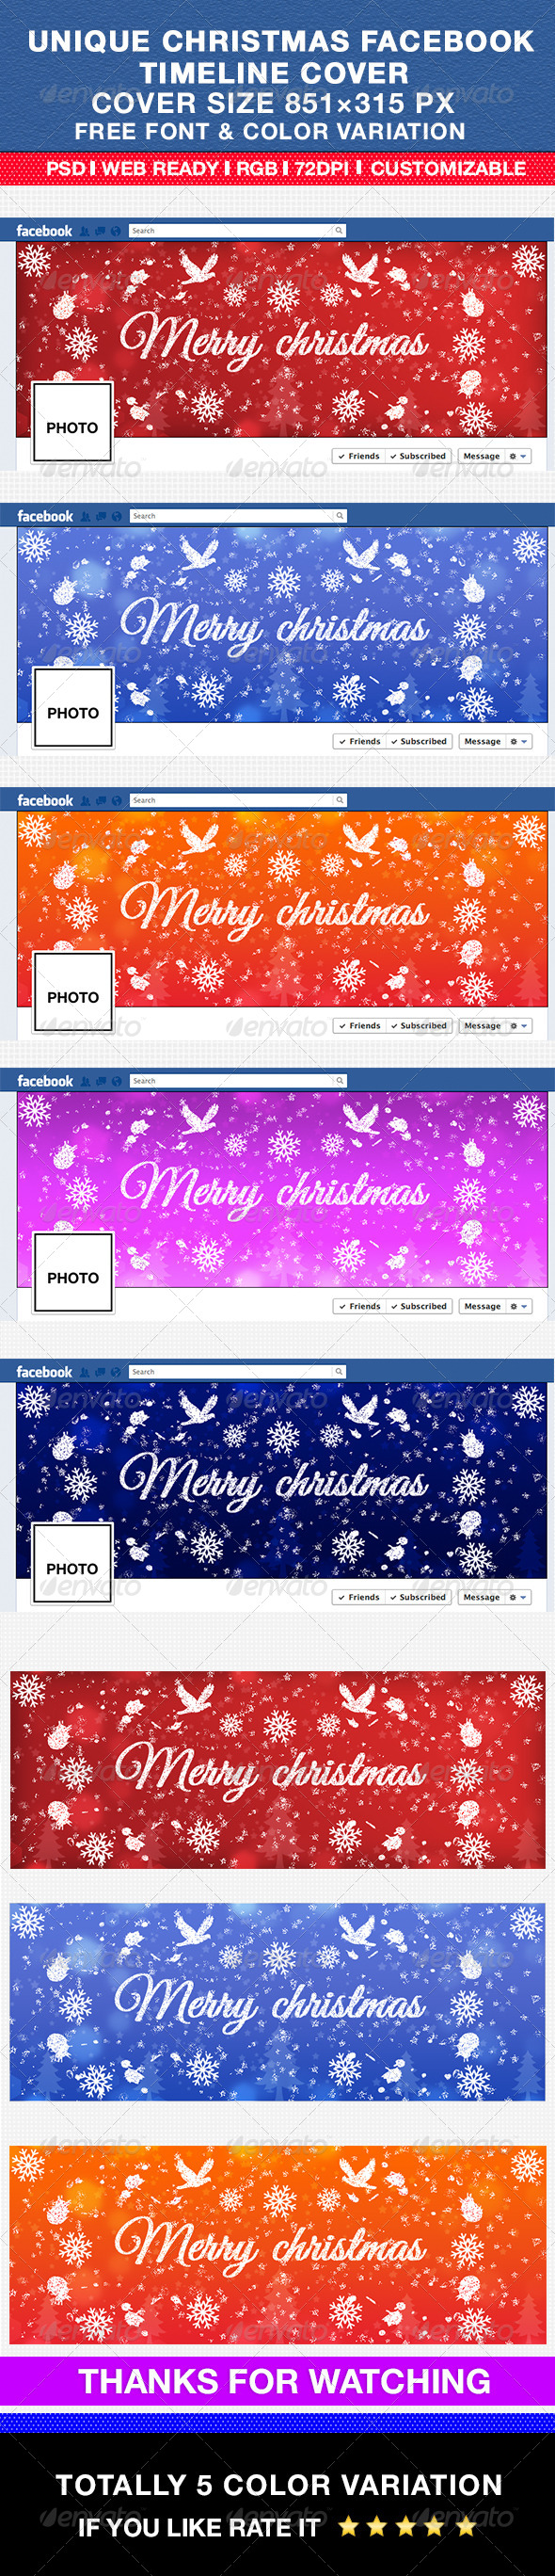 GraphicRiver Unique Christmas Facebook Timeline Cover 6445968